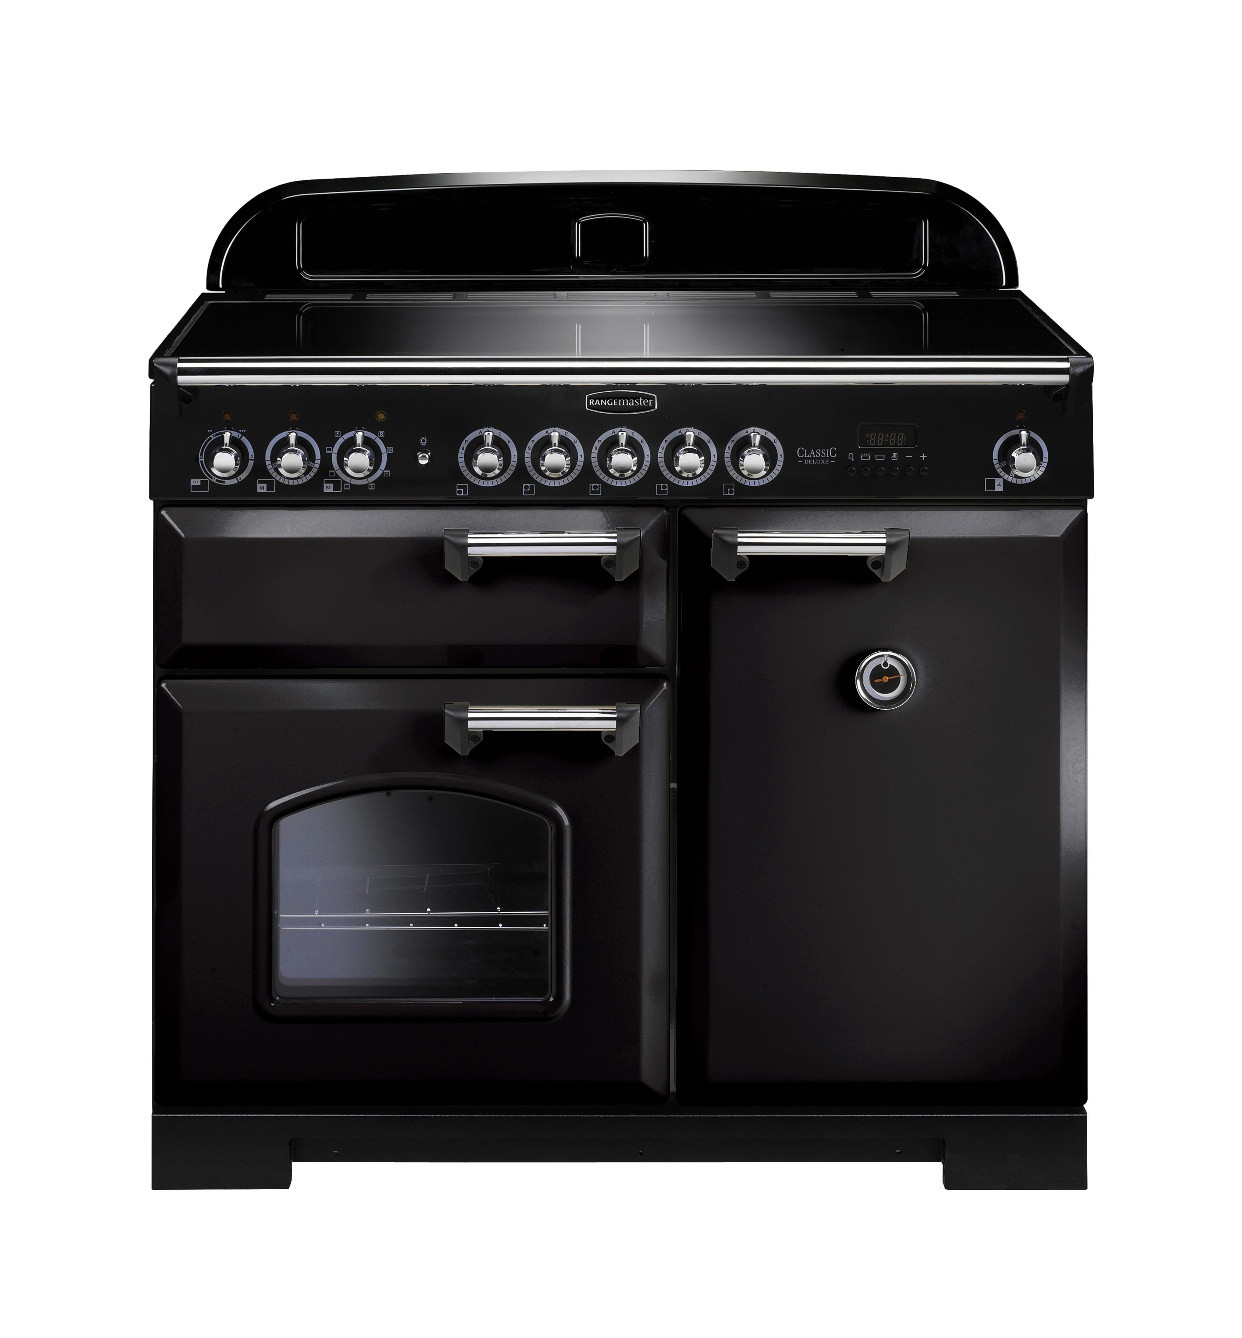 Rangemaster Classic Deluxe 100 Induction Black/Chrome Trim Range Cooker CDL100EIBL/C 95920